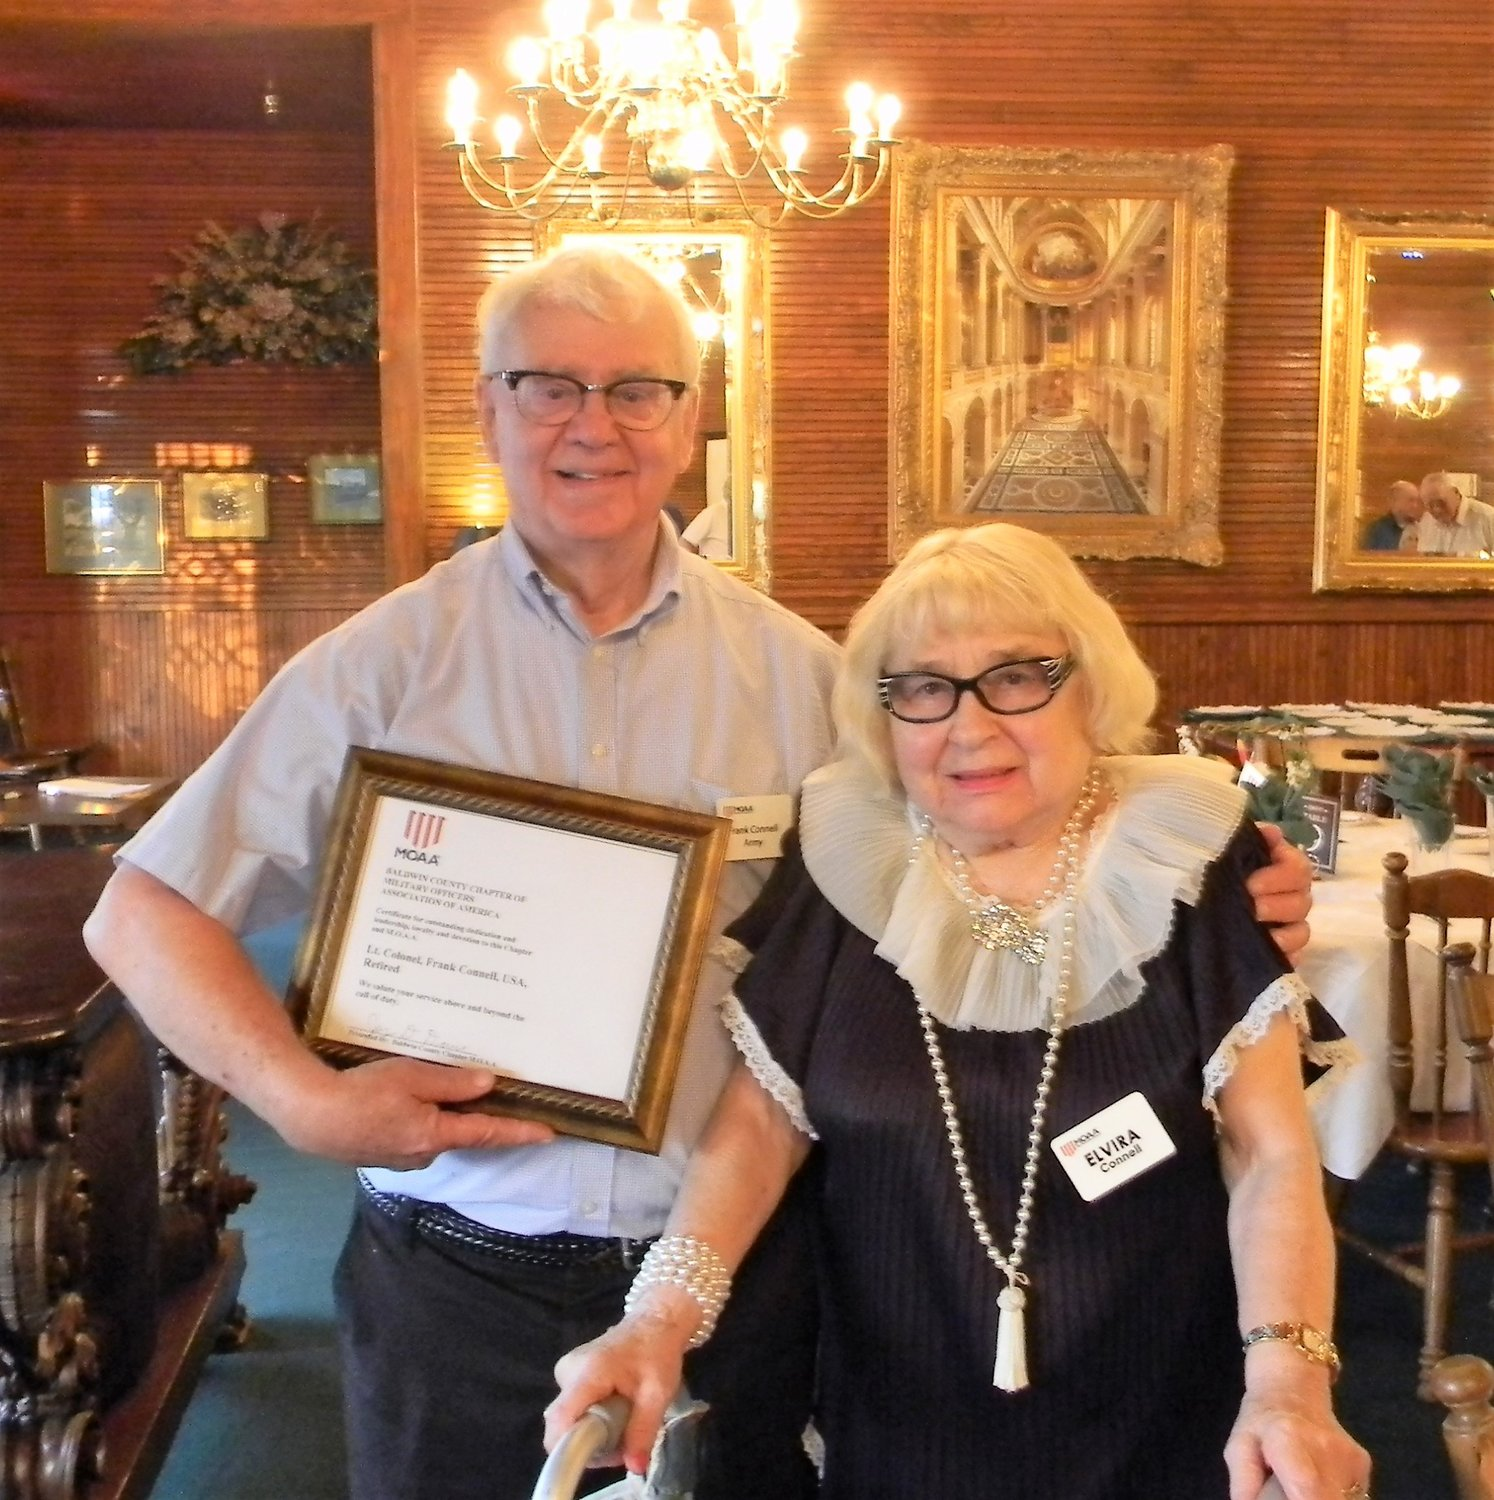 Lt. Col. Frank Connell, ret., and his wife Elvira Tautz Connell, of Fairhope, attend a ceremony last month in which Connell received a commemorative award for outstanding dedication and leadership to the M.O.A.A.